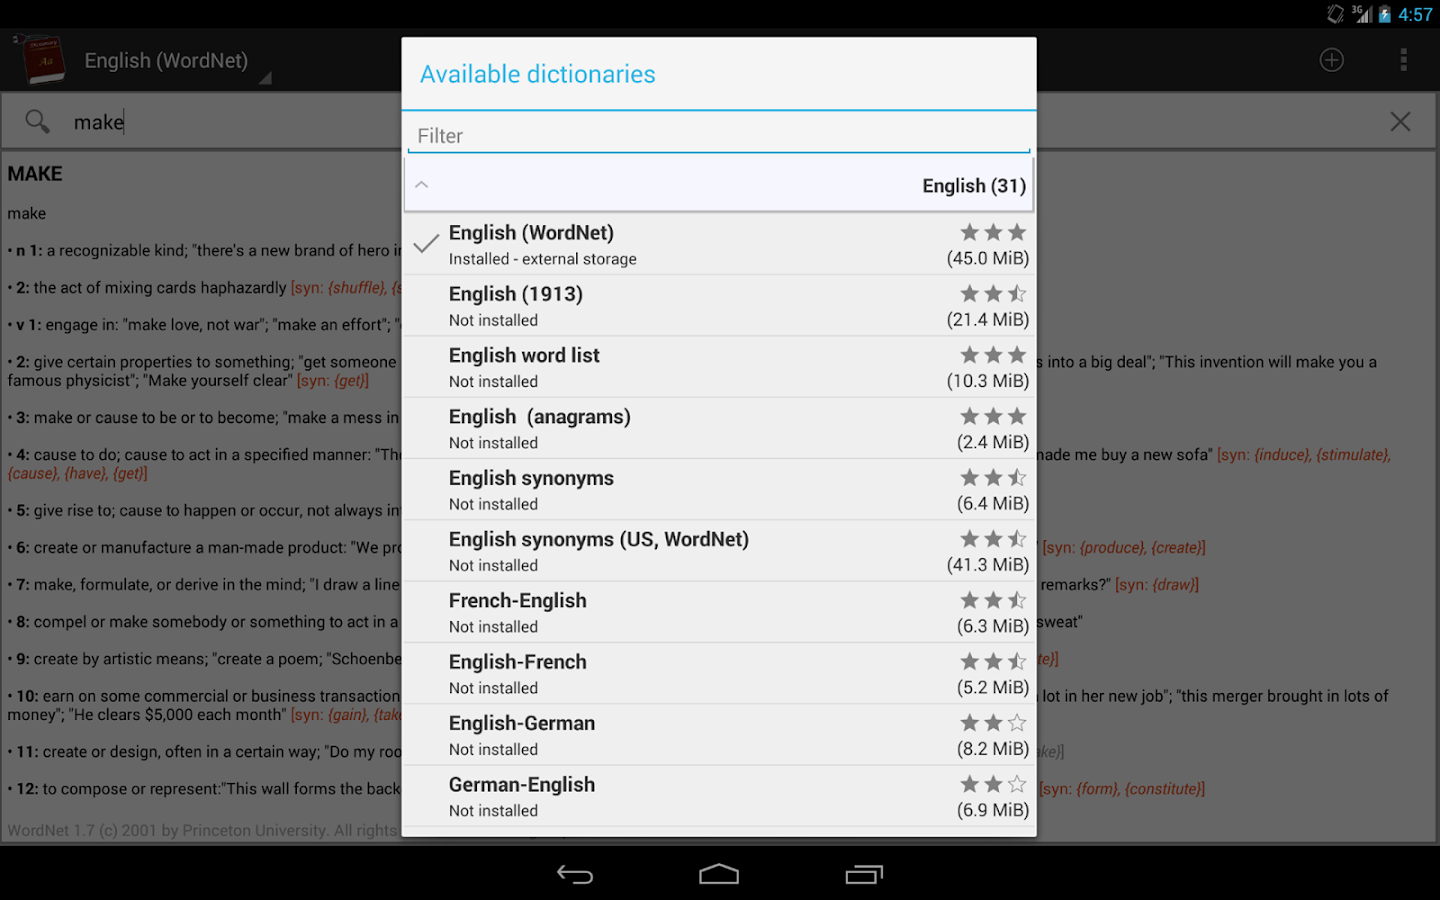 Offline dictionaries pro Screenshot 6